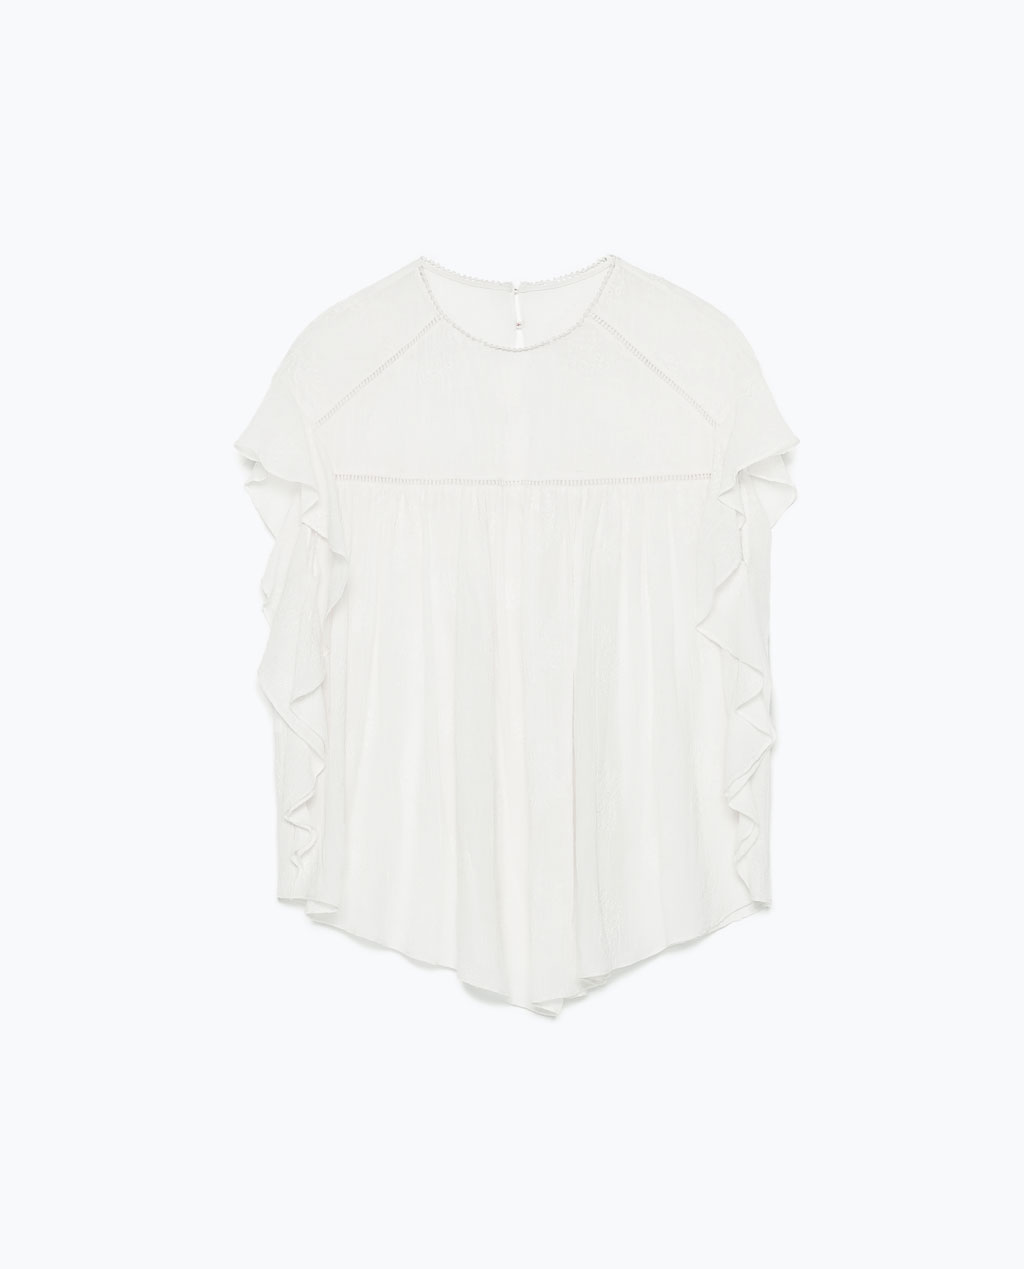 Zara Embroidered Frilly Top